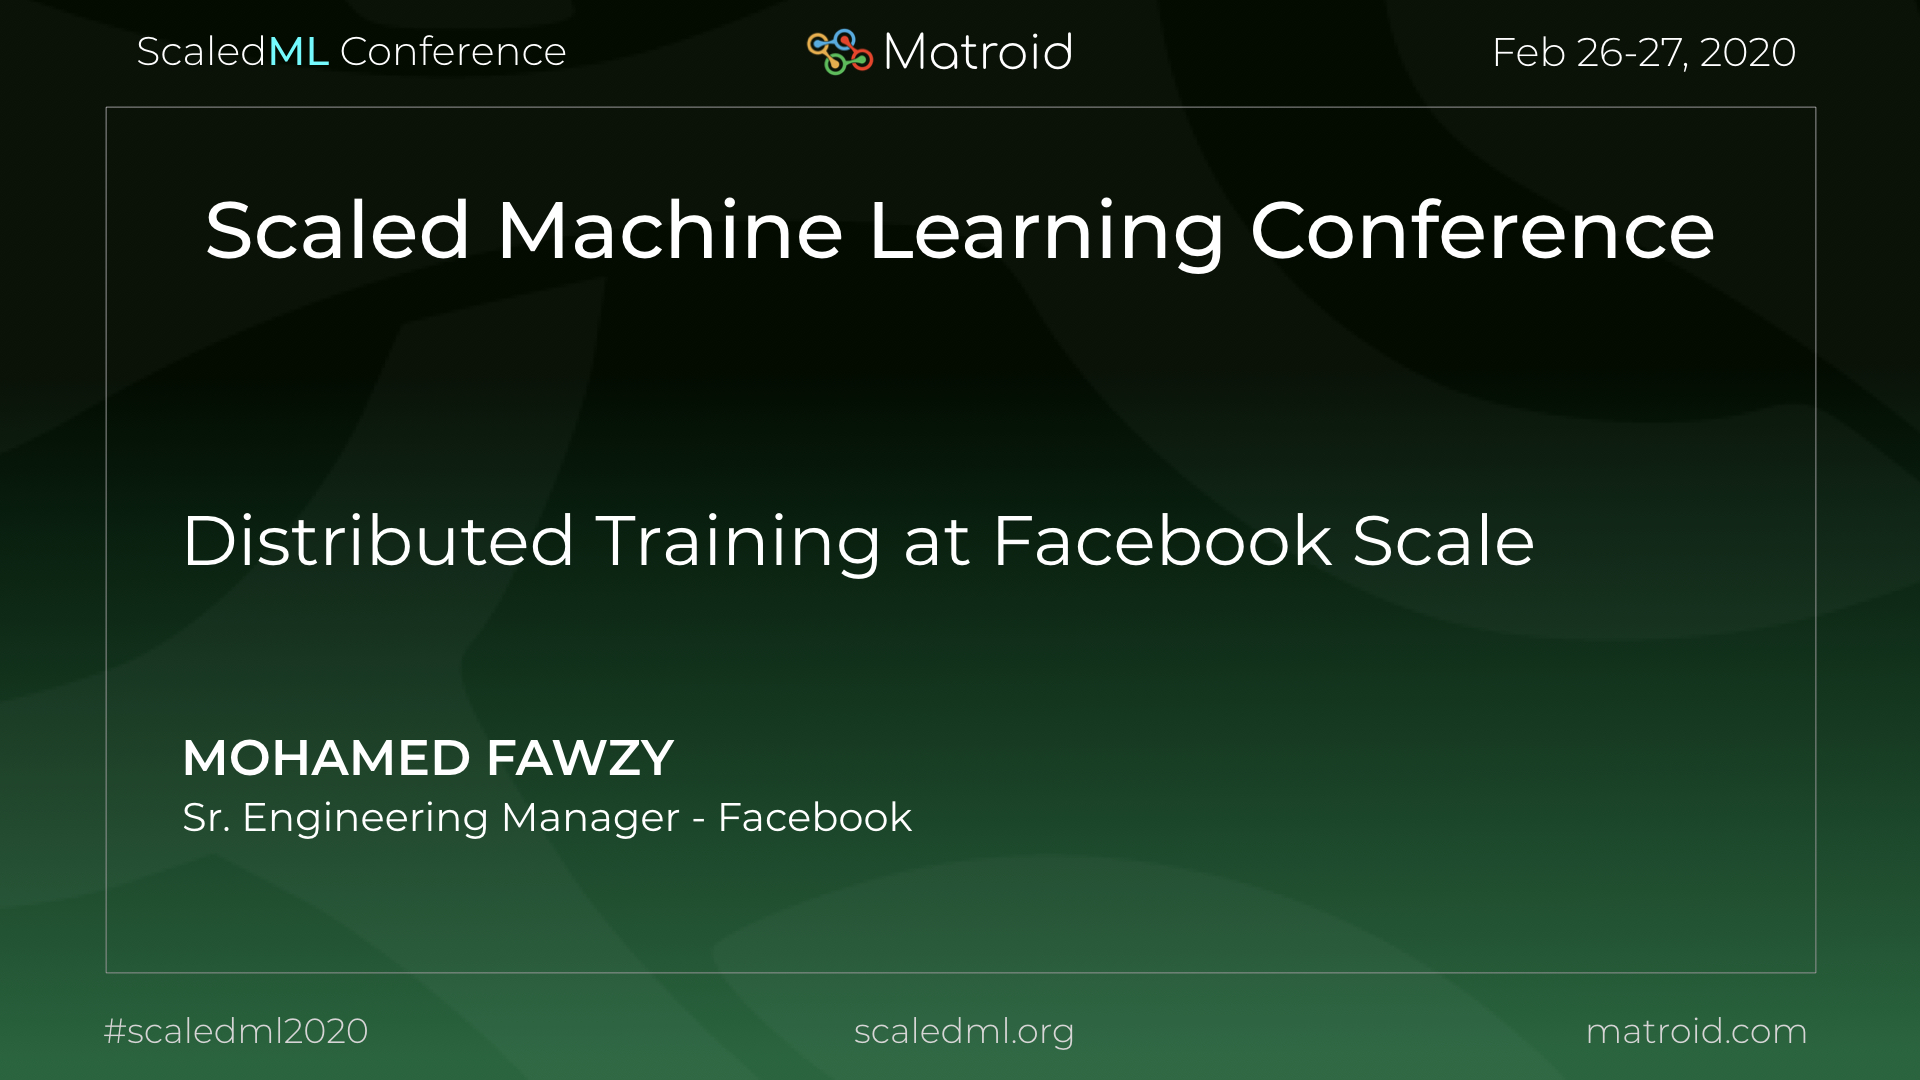 Mohamed Fawzy Facebook ScaledML Conference TPU CPU GPU Computer Vision AI Artificial Intelligence Machine Learning